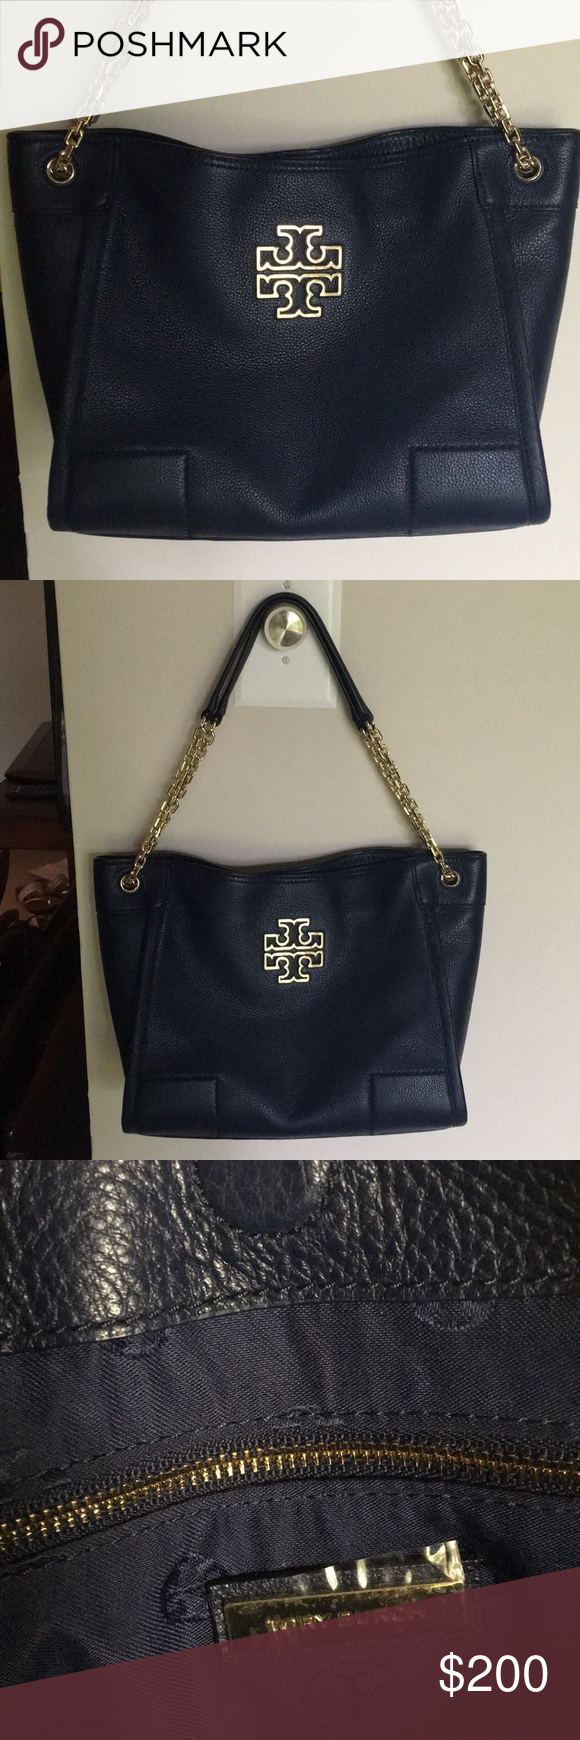 bfaed53d4f54 Tory Burch purse Excellent brand new condition. • Style   39057 0817 • Tory  Burch